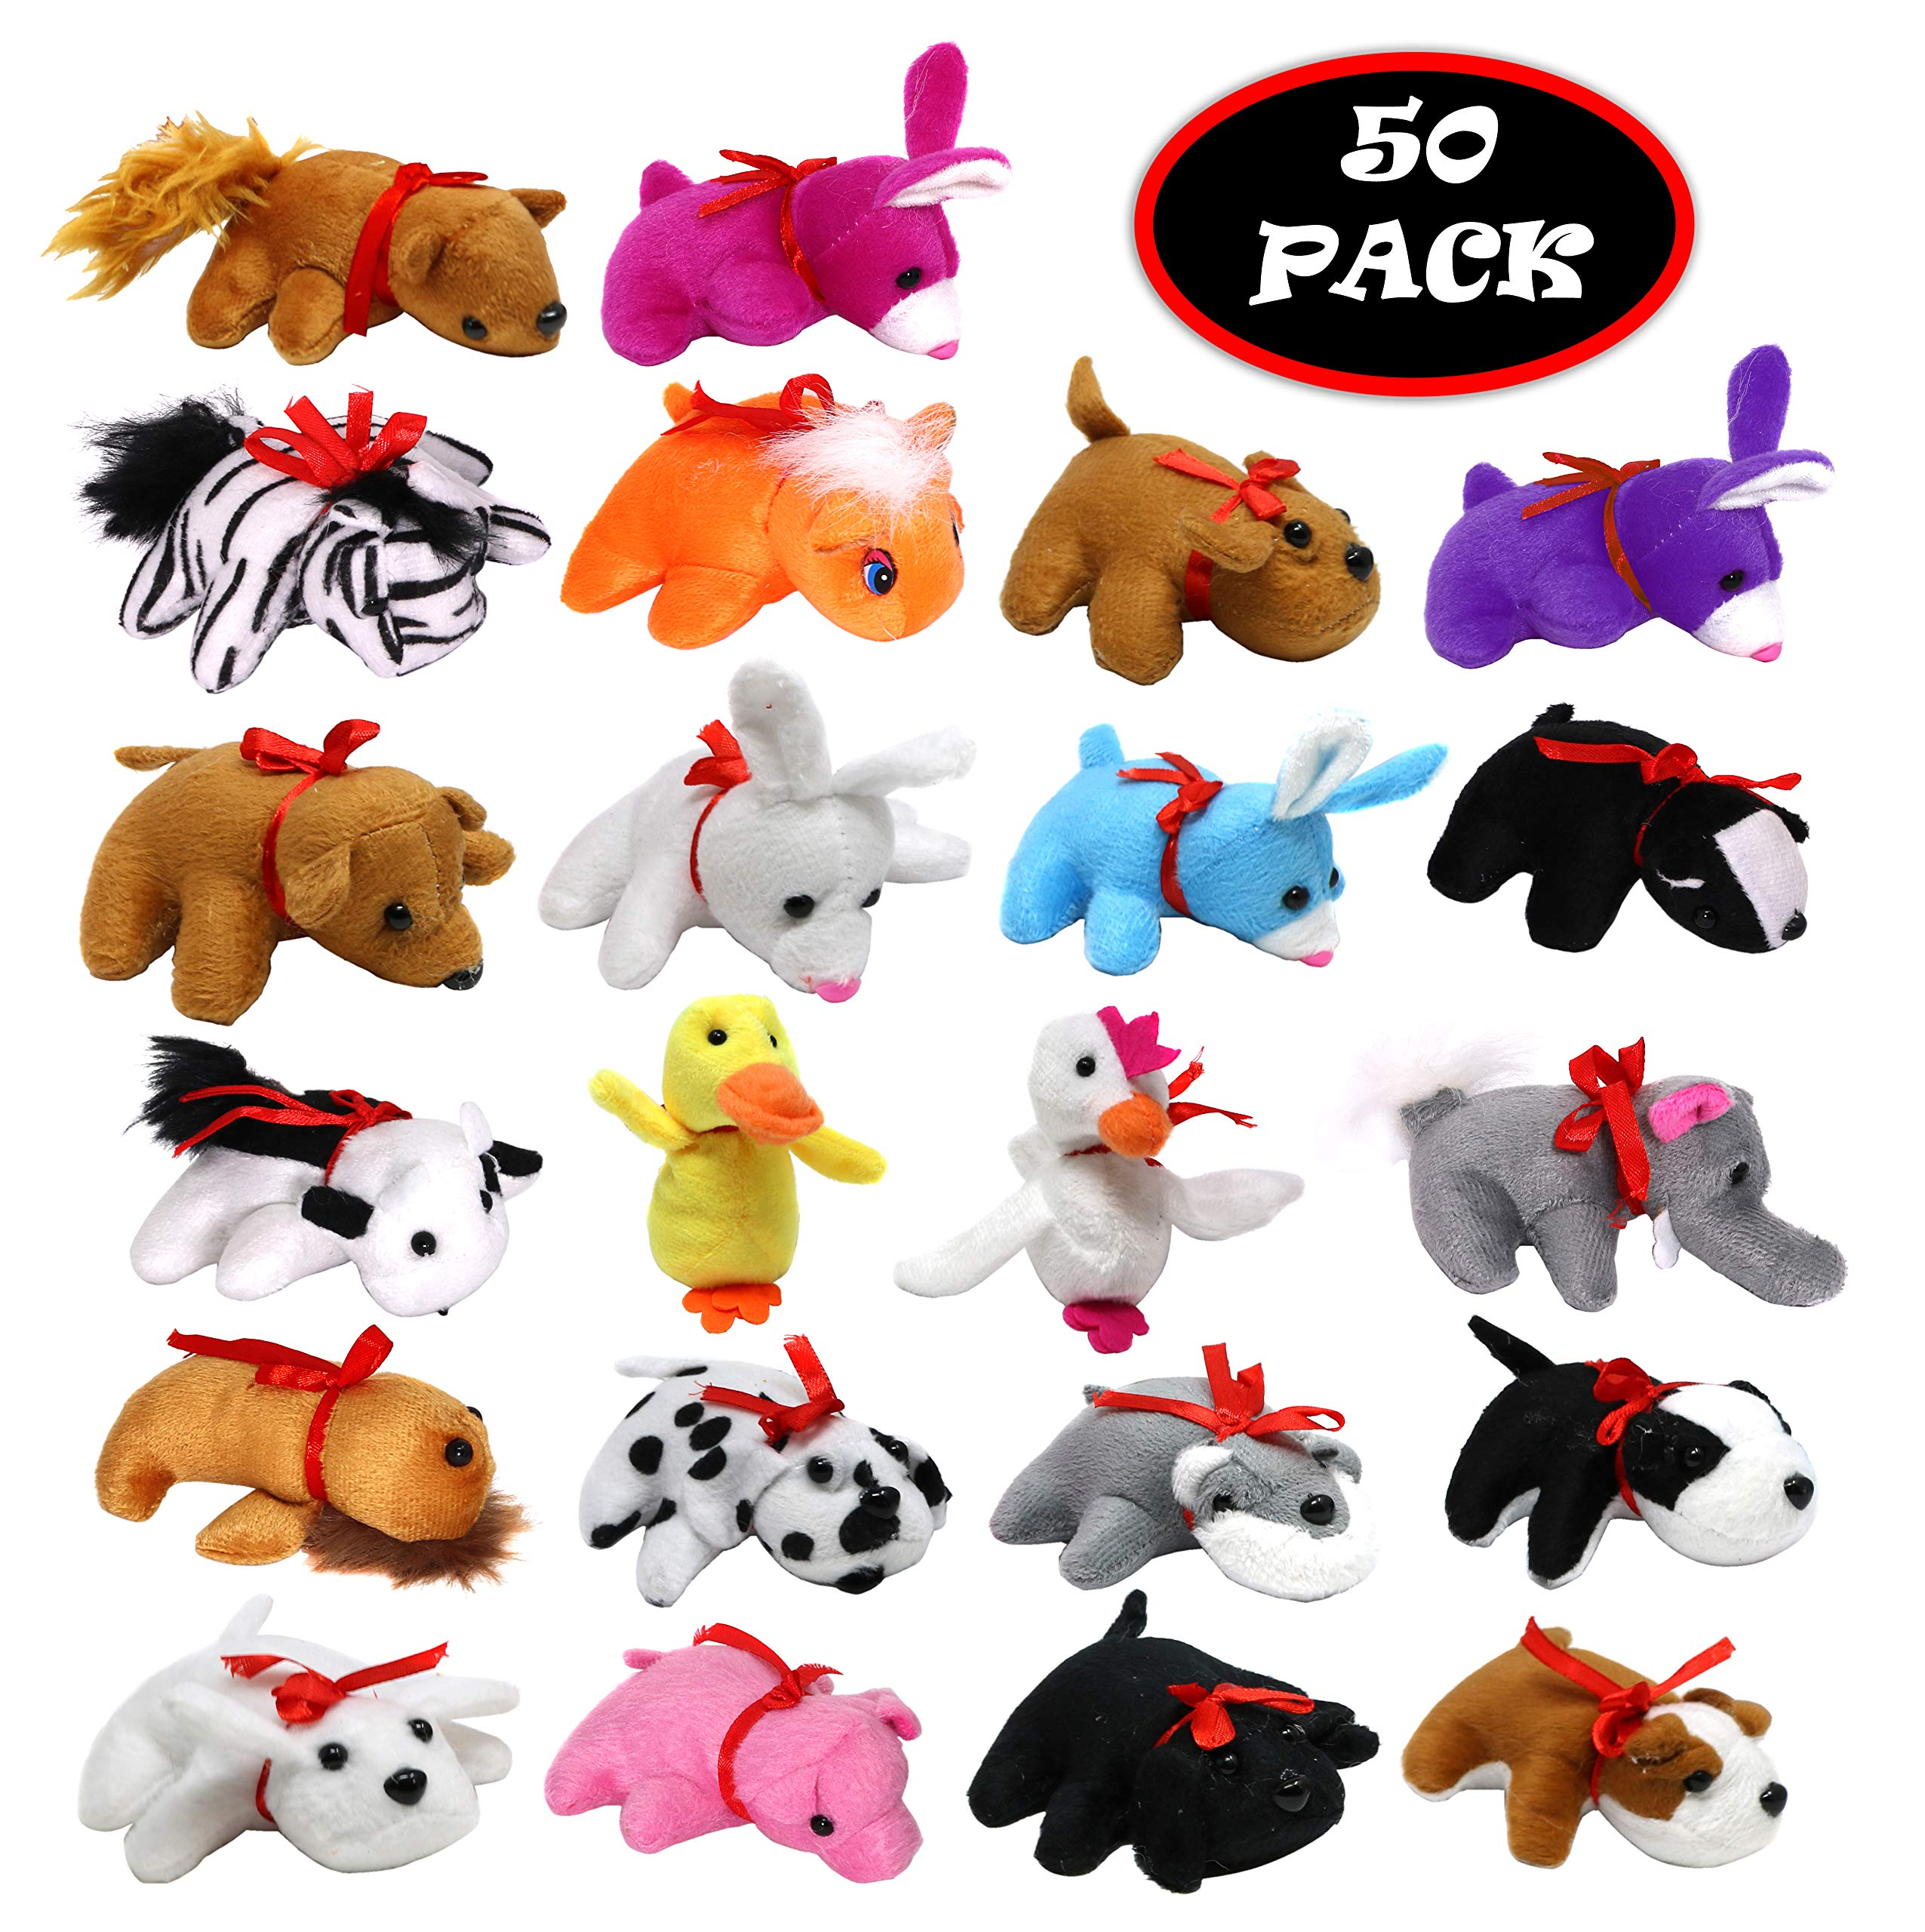 Mini Plush Bears And Stuffed Toy Animals Bulk Pack Of 50 by The Plush Family